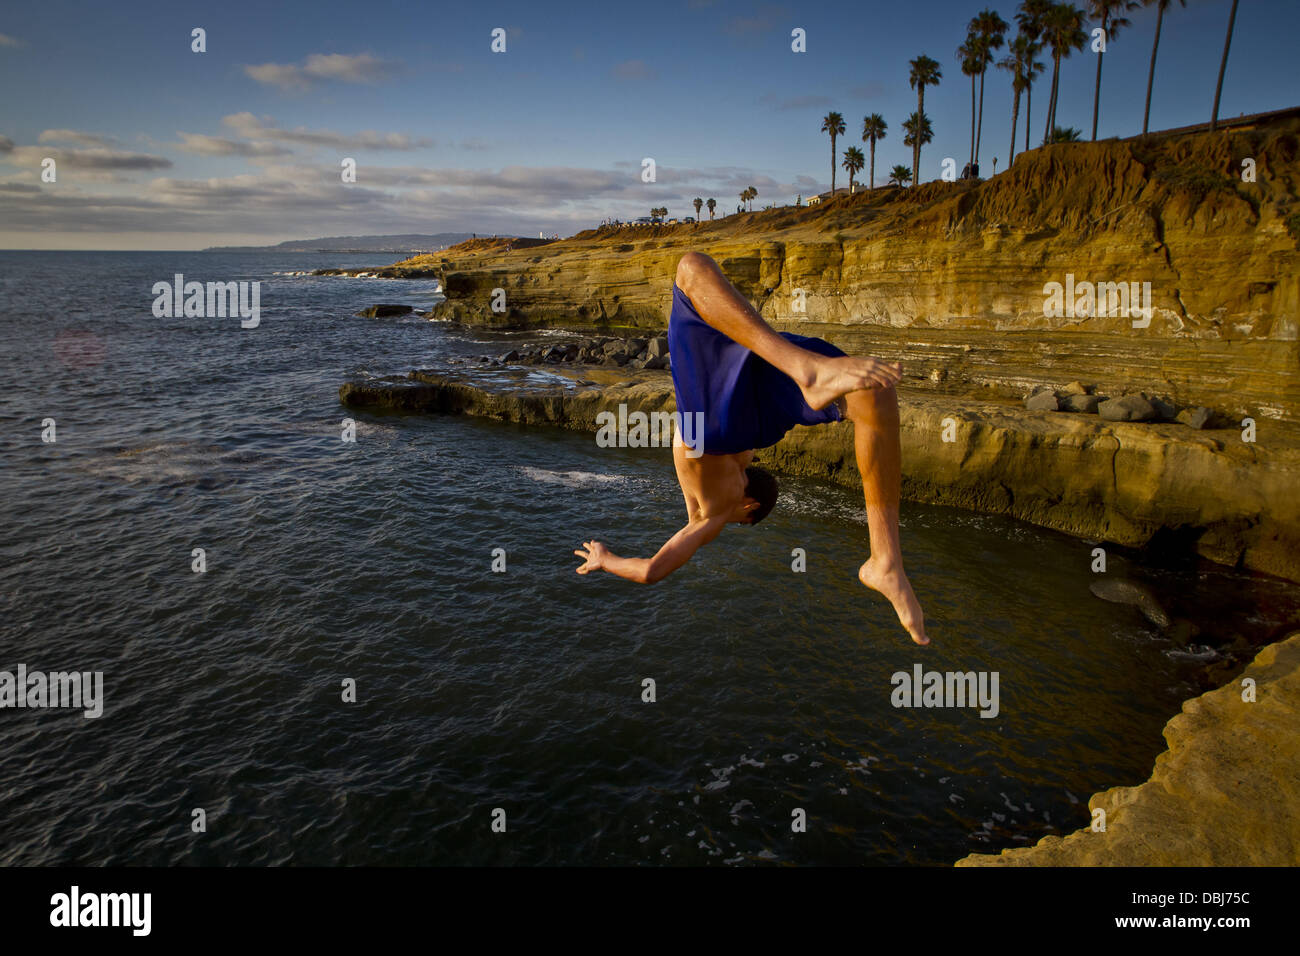 San Diego, California, USA. 30th July, 2013. A daredevil does a backflip off the lip into the water at Sunset Cliffs - Stock Image